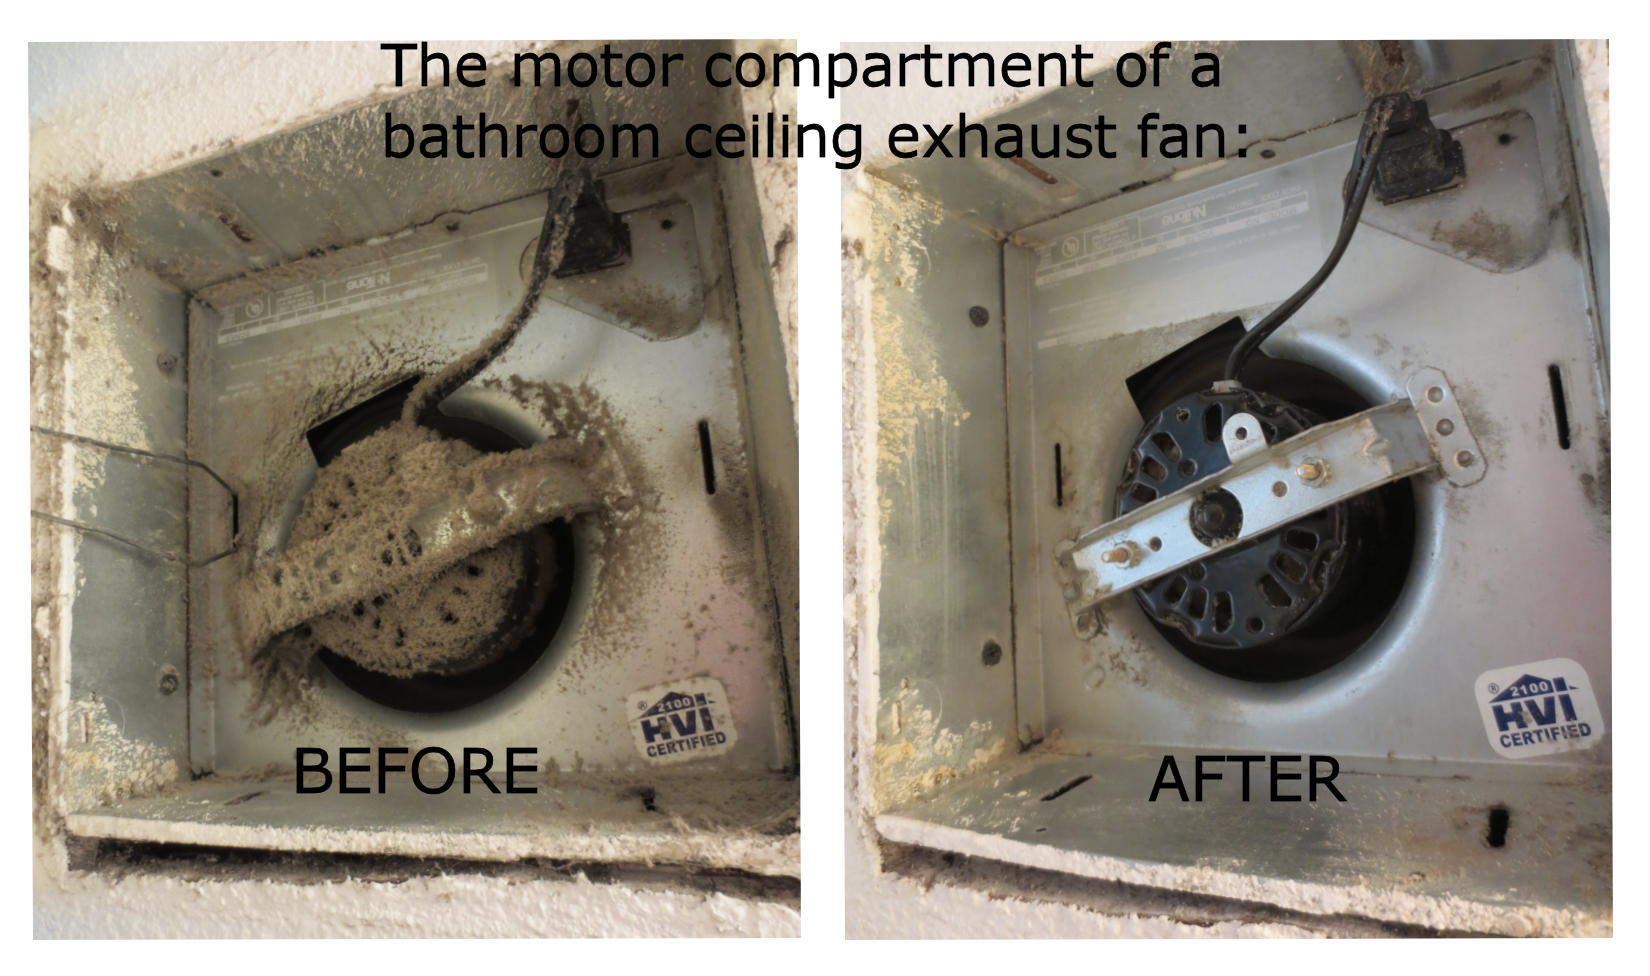 Bathroom exhaust fan lint is a fire hazard mini mops for Bathroom exhaust fan cleaning service